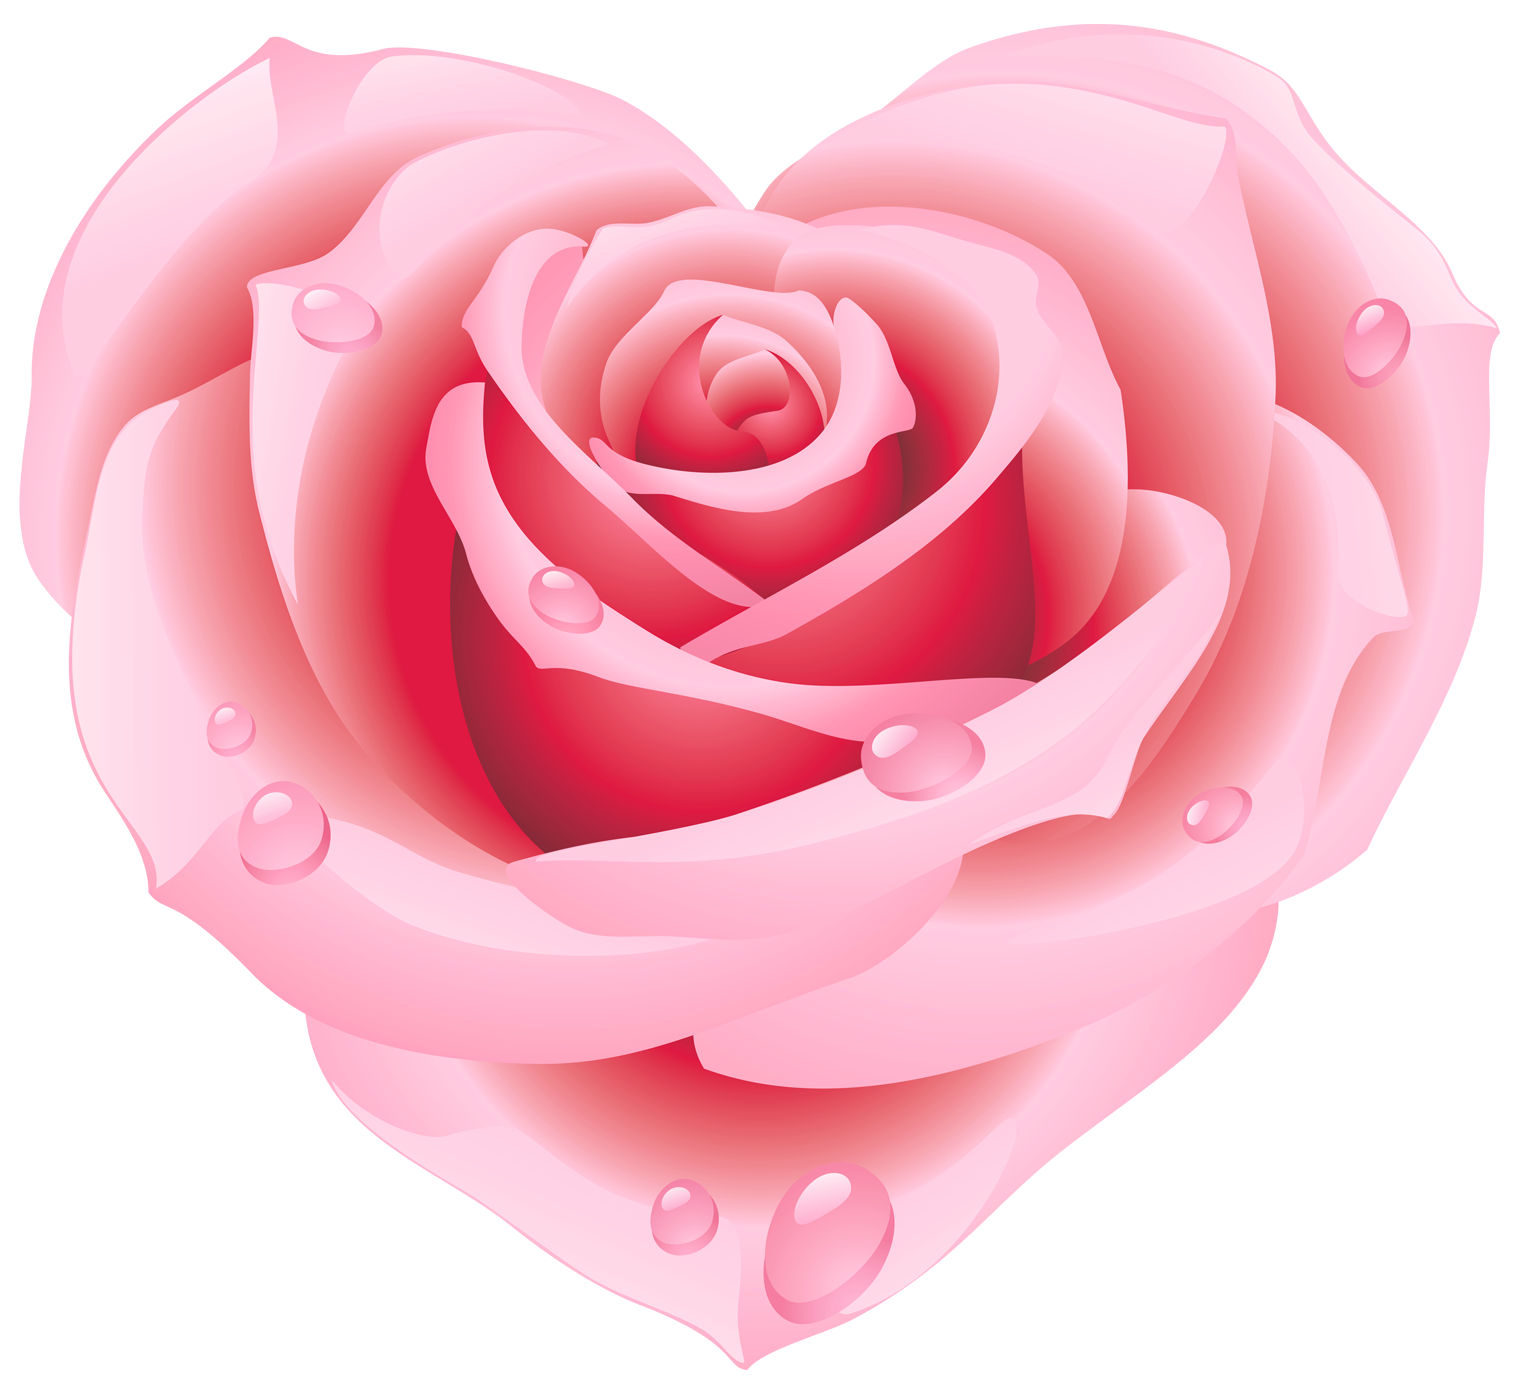 Heart rose. Large pink clipart cute